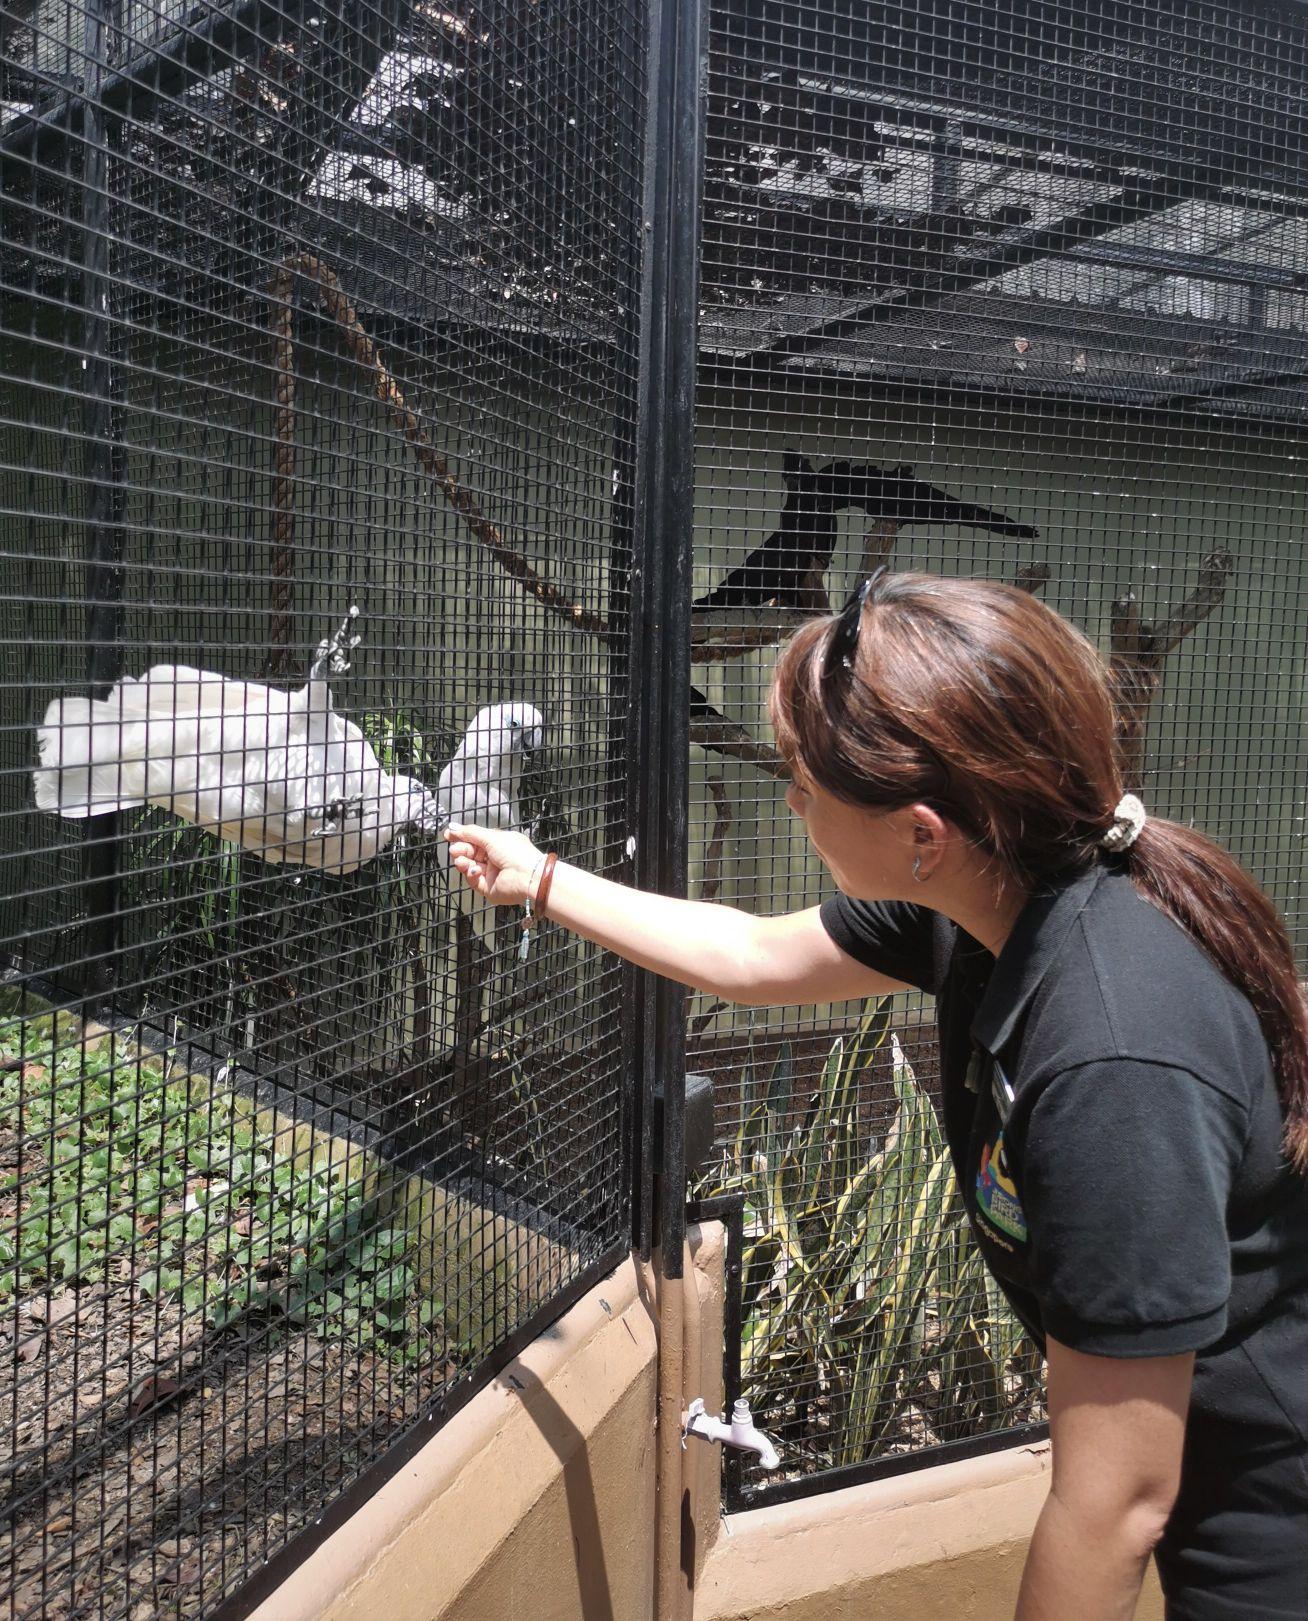 Interacting with a cockatoo in Parrot Paradise at Jurong Bird Park.